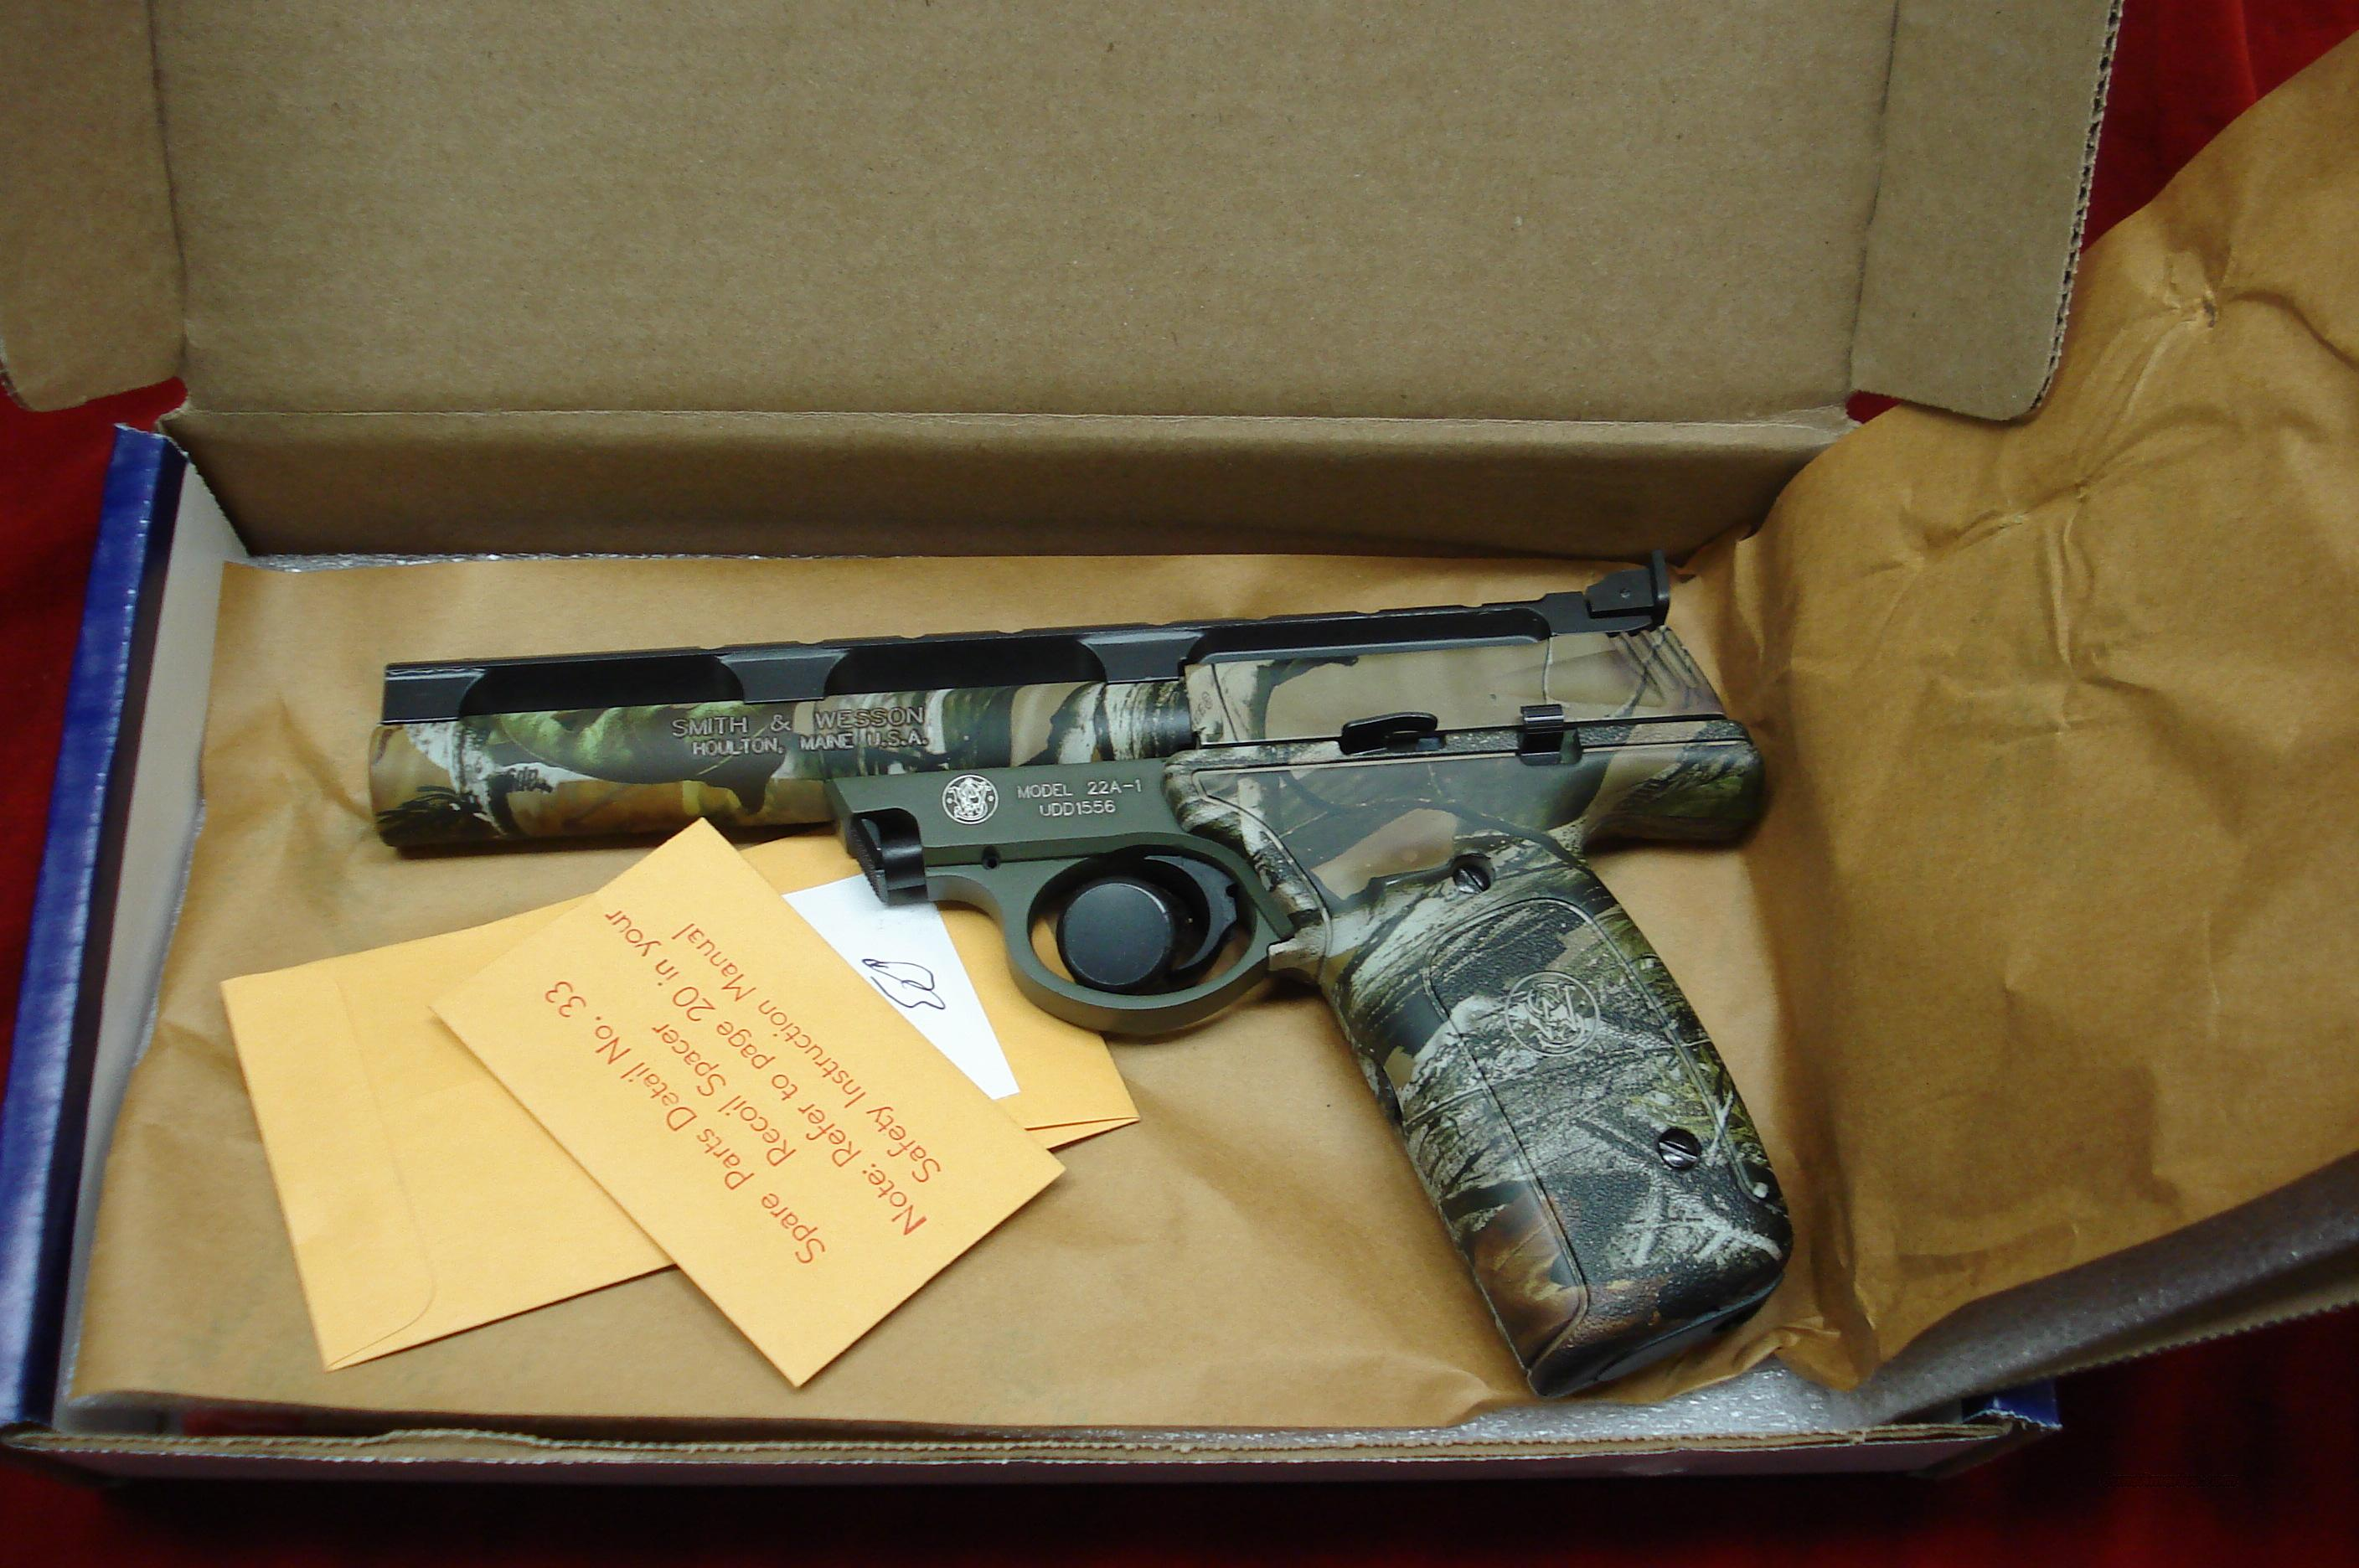 smith and wesson 22a realtree camo 22lr 5 5 b for sale rh gunsamerica com Smith and Wesson Revolvers Smith and Wesson 22A Disassembly